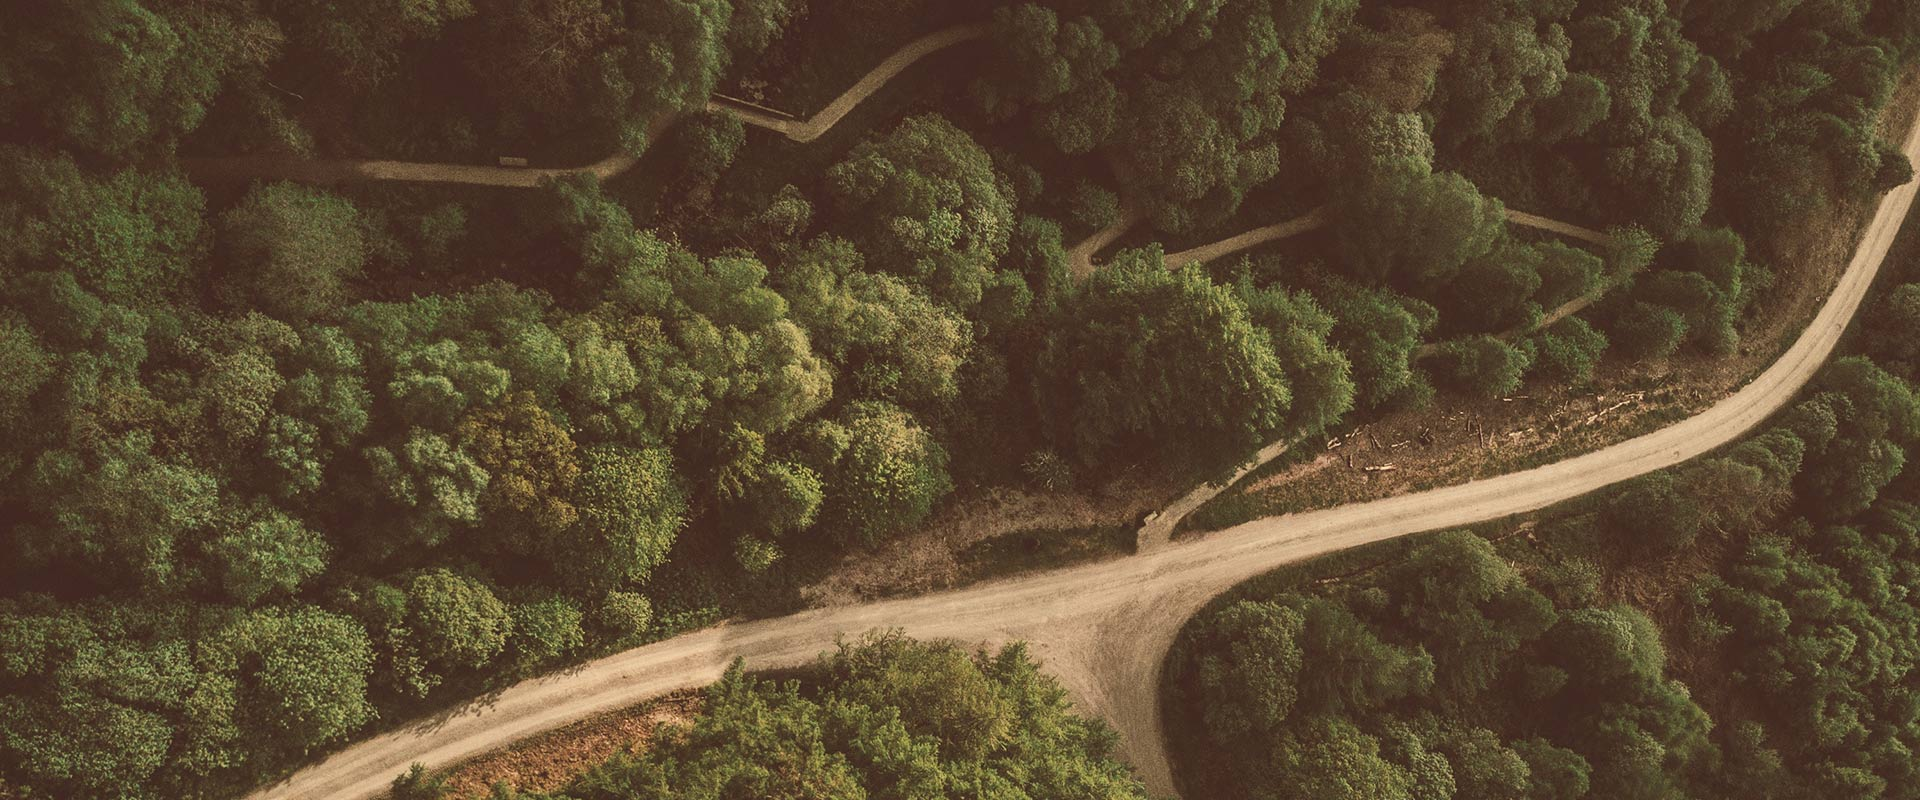 Forest with a road from above